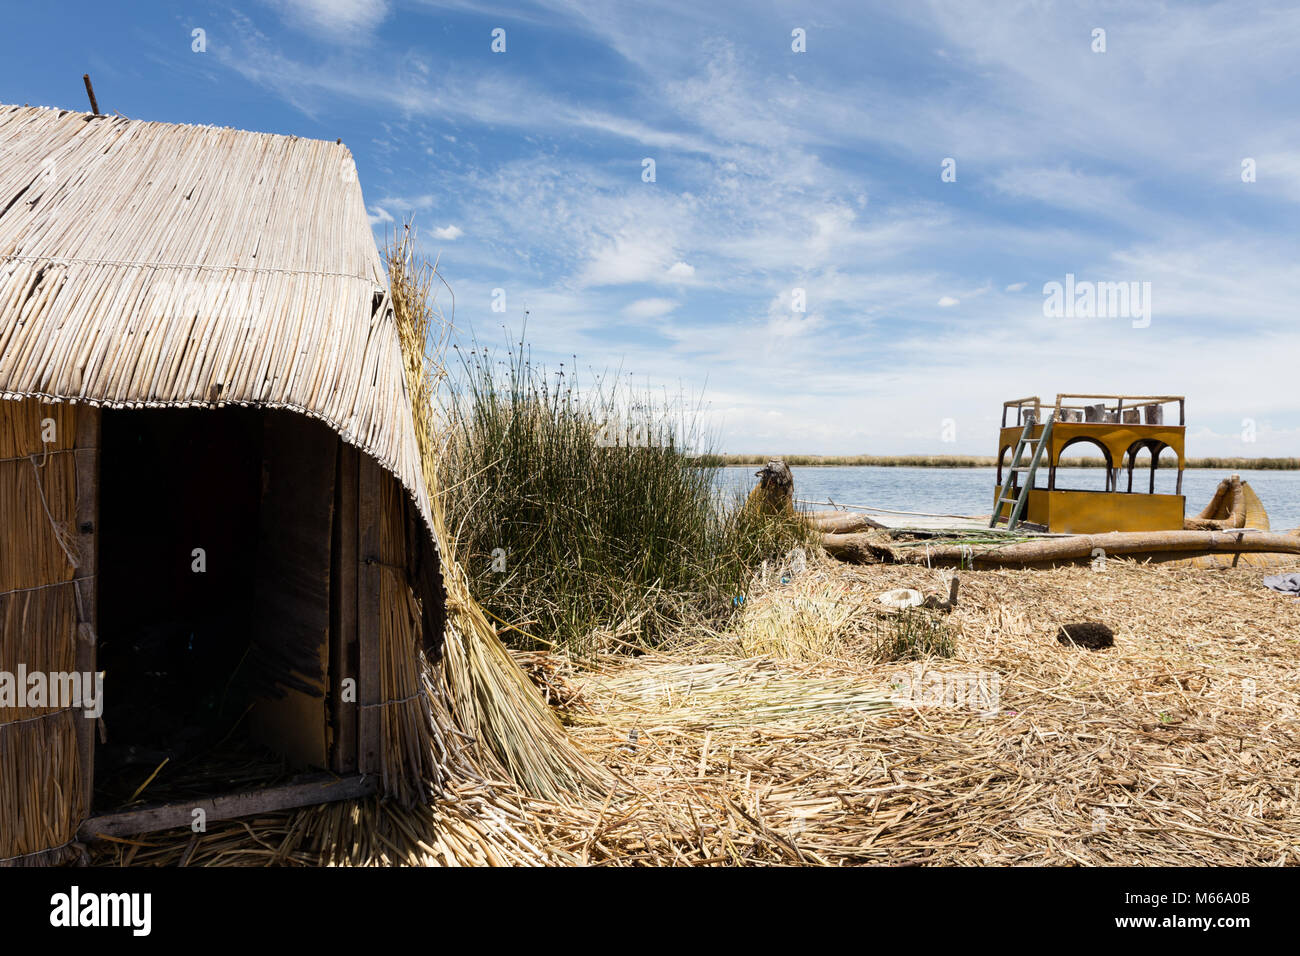 traditional tent on the Titicaca lake near Puno, Peru - Stock Image